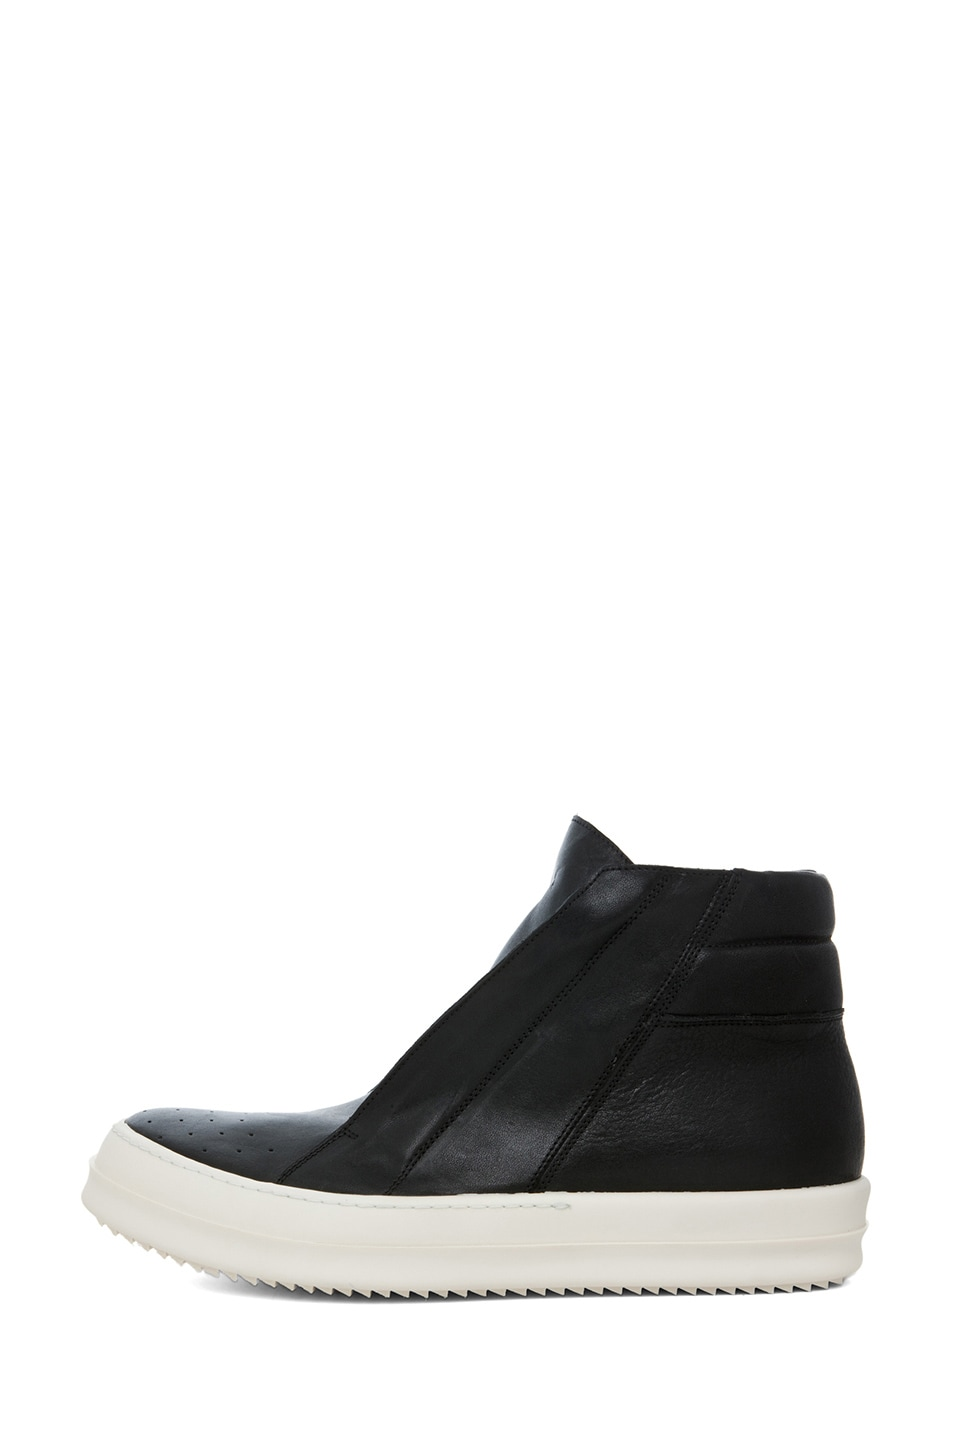 Image 1 of Rick Owens Island Dunk Sneaker in Black & White